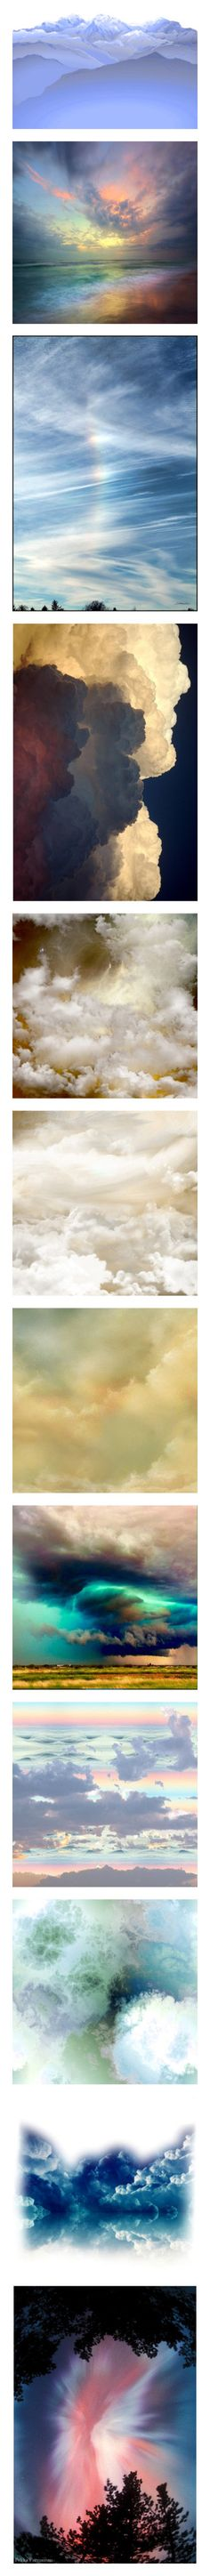 """Open HEAVEN - Anything Goes"" by for-the-art-of-fashion ❤ liked on Polyvore featuring backgrounds, fade, landscape, pictures, clouds, sky, art, fantasy backgrounds, angels and filler"